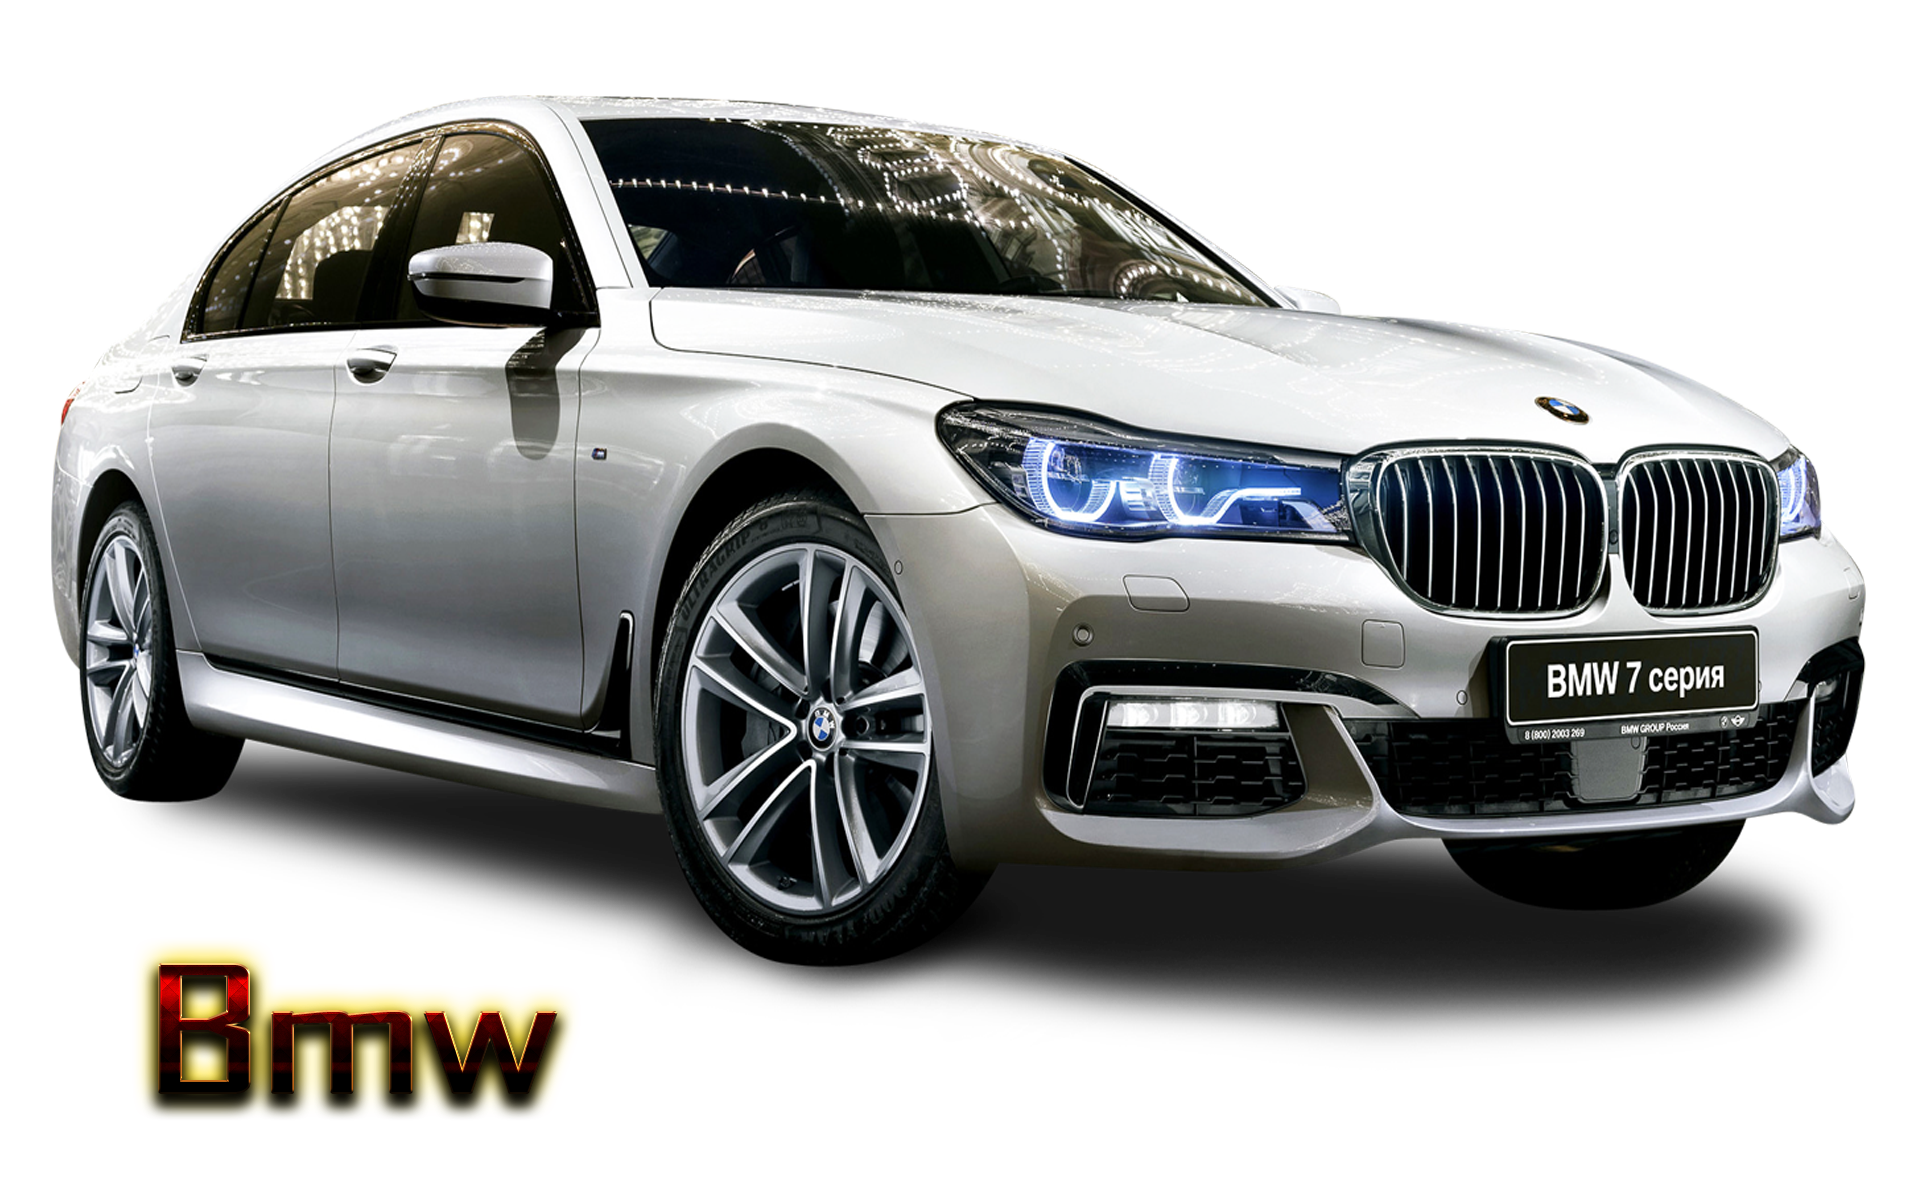 Bmw 3 series PNG Images.